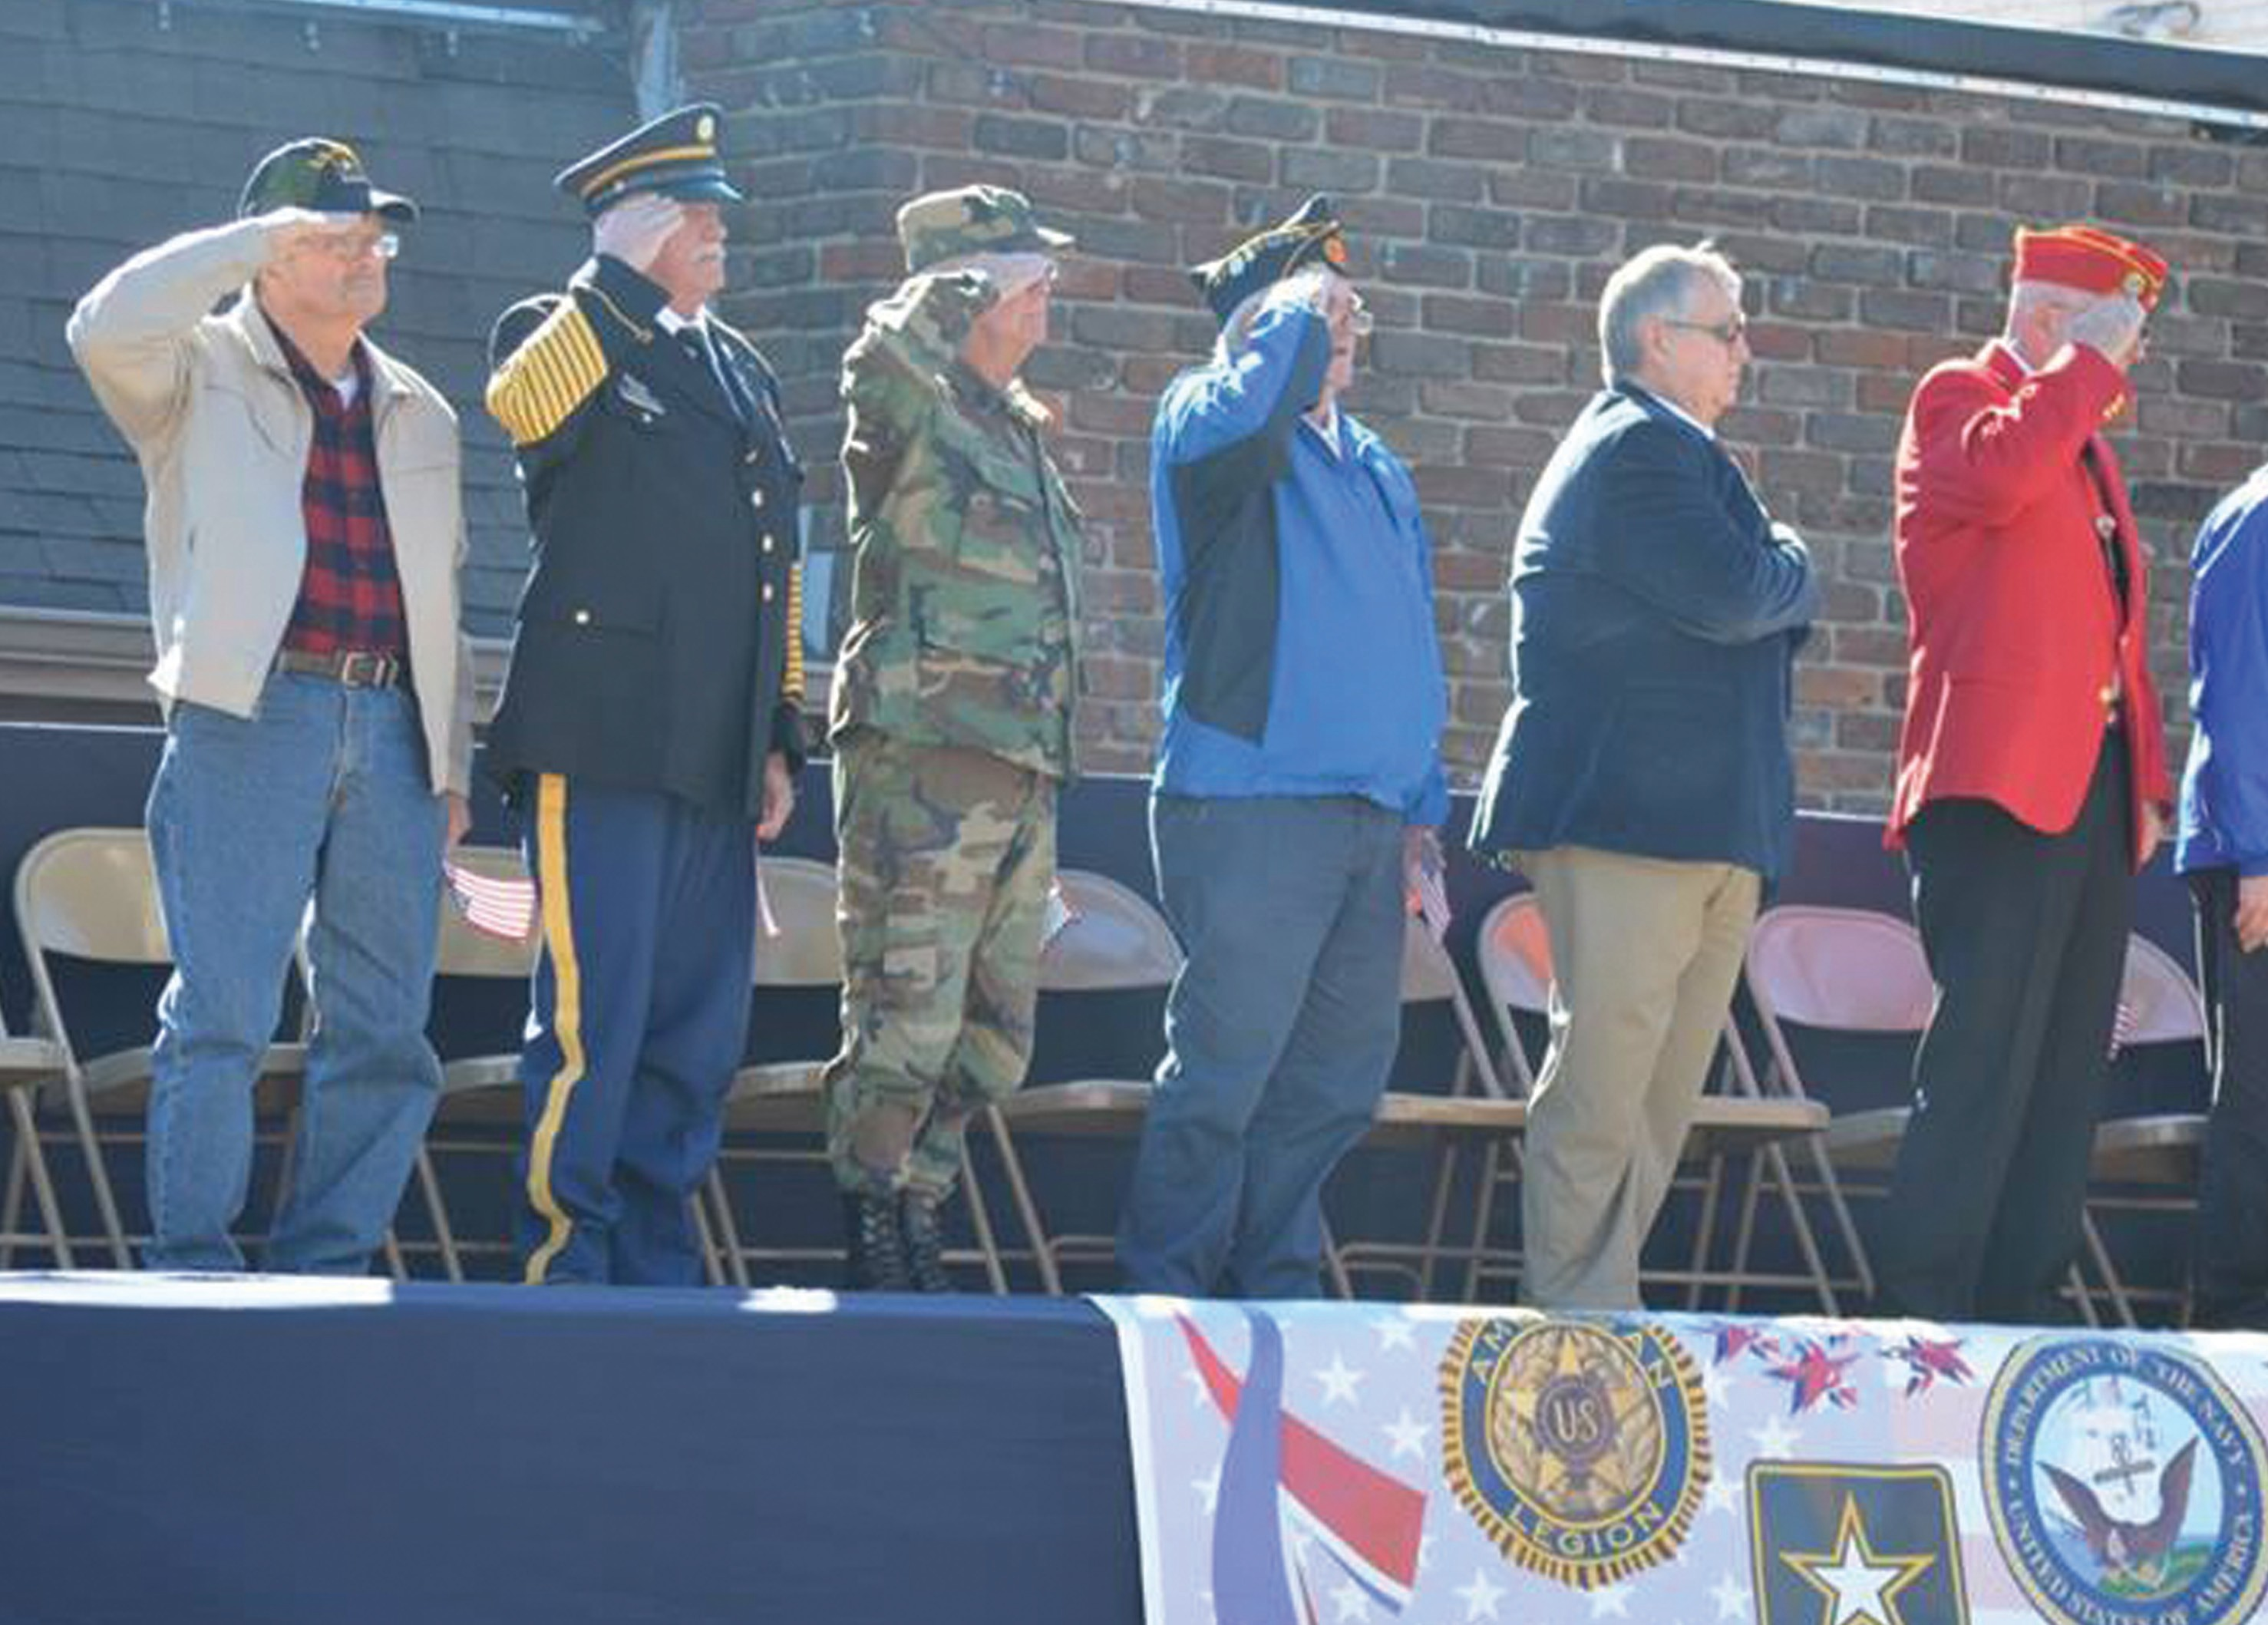 Even though the Blount County Veterans Parade was postponed due to inclement weather, the Nov. 14 date was bright and beautiful. With more than 40 entries, this parade was the biggest and best yet, according to organizers. Photo courtesey Janice Shell